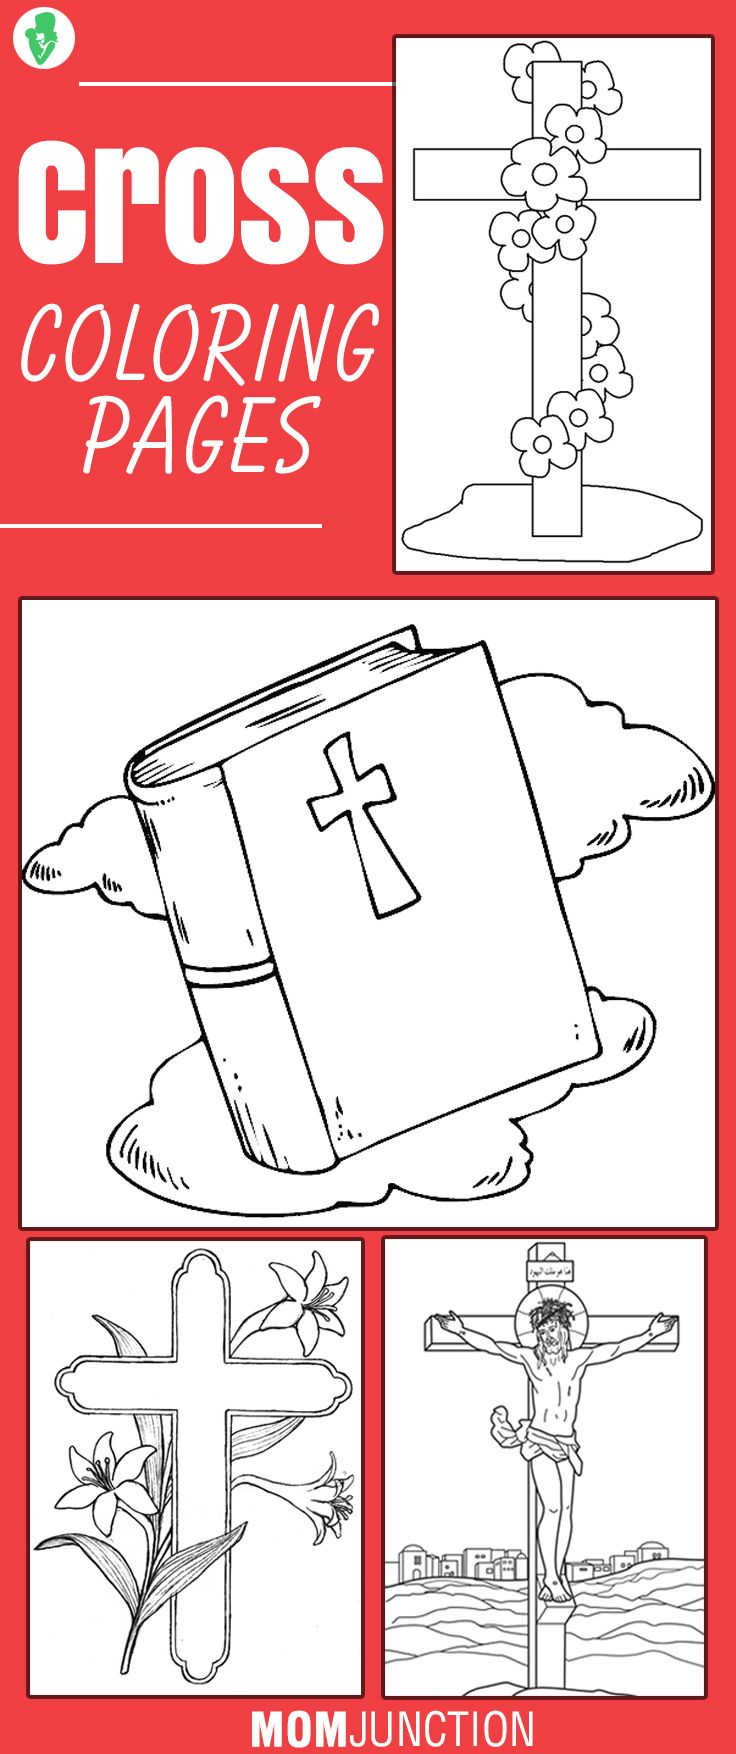 Top 10 Free Printable Cross Coloring